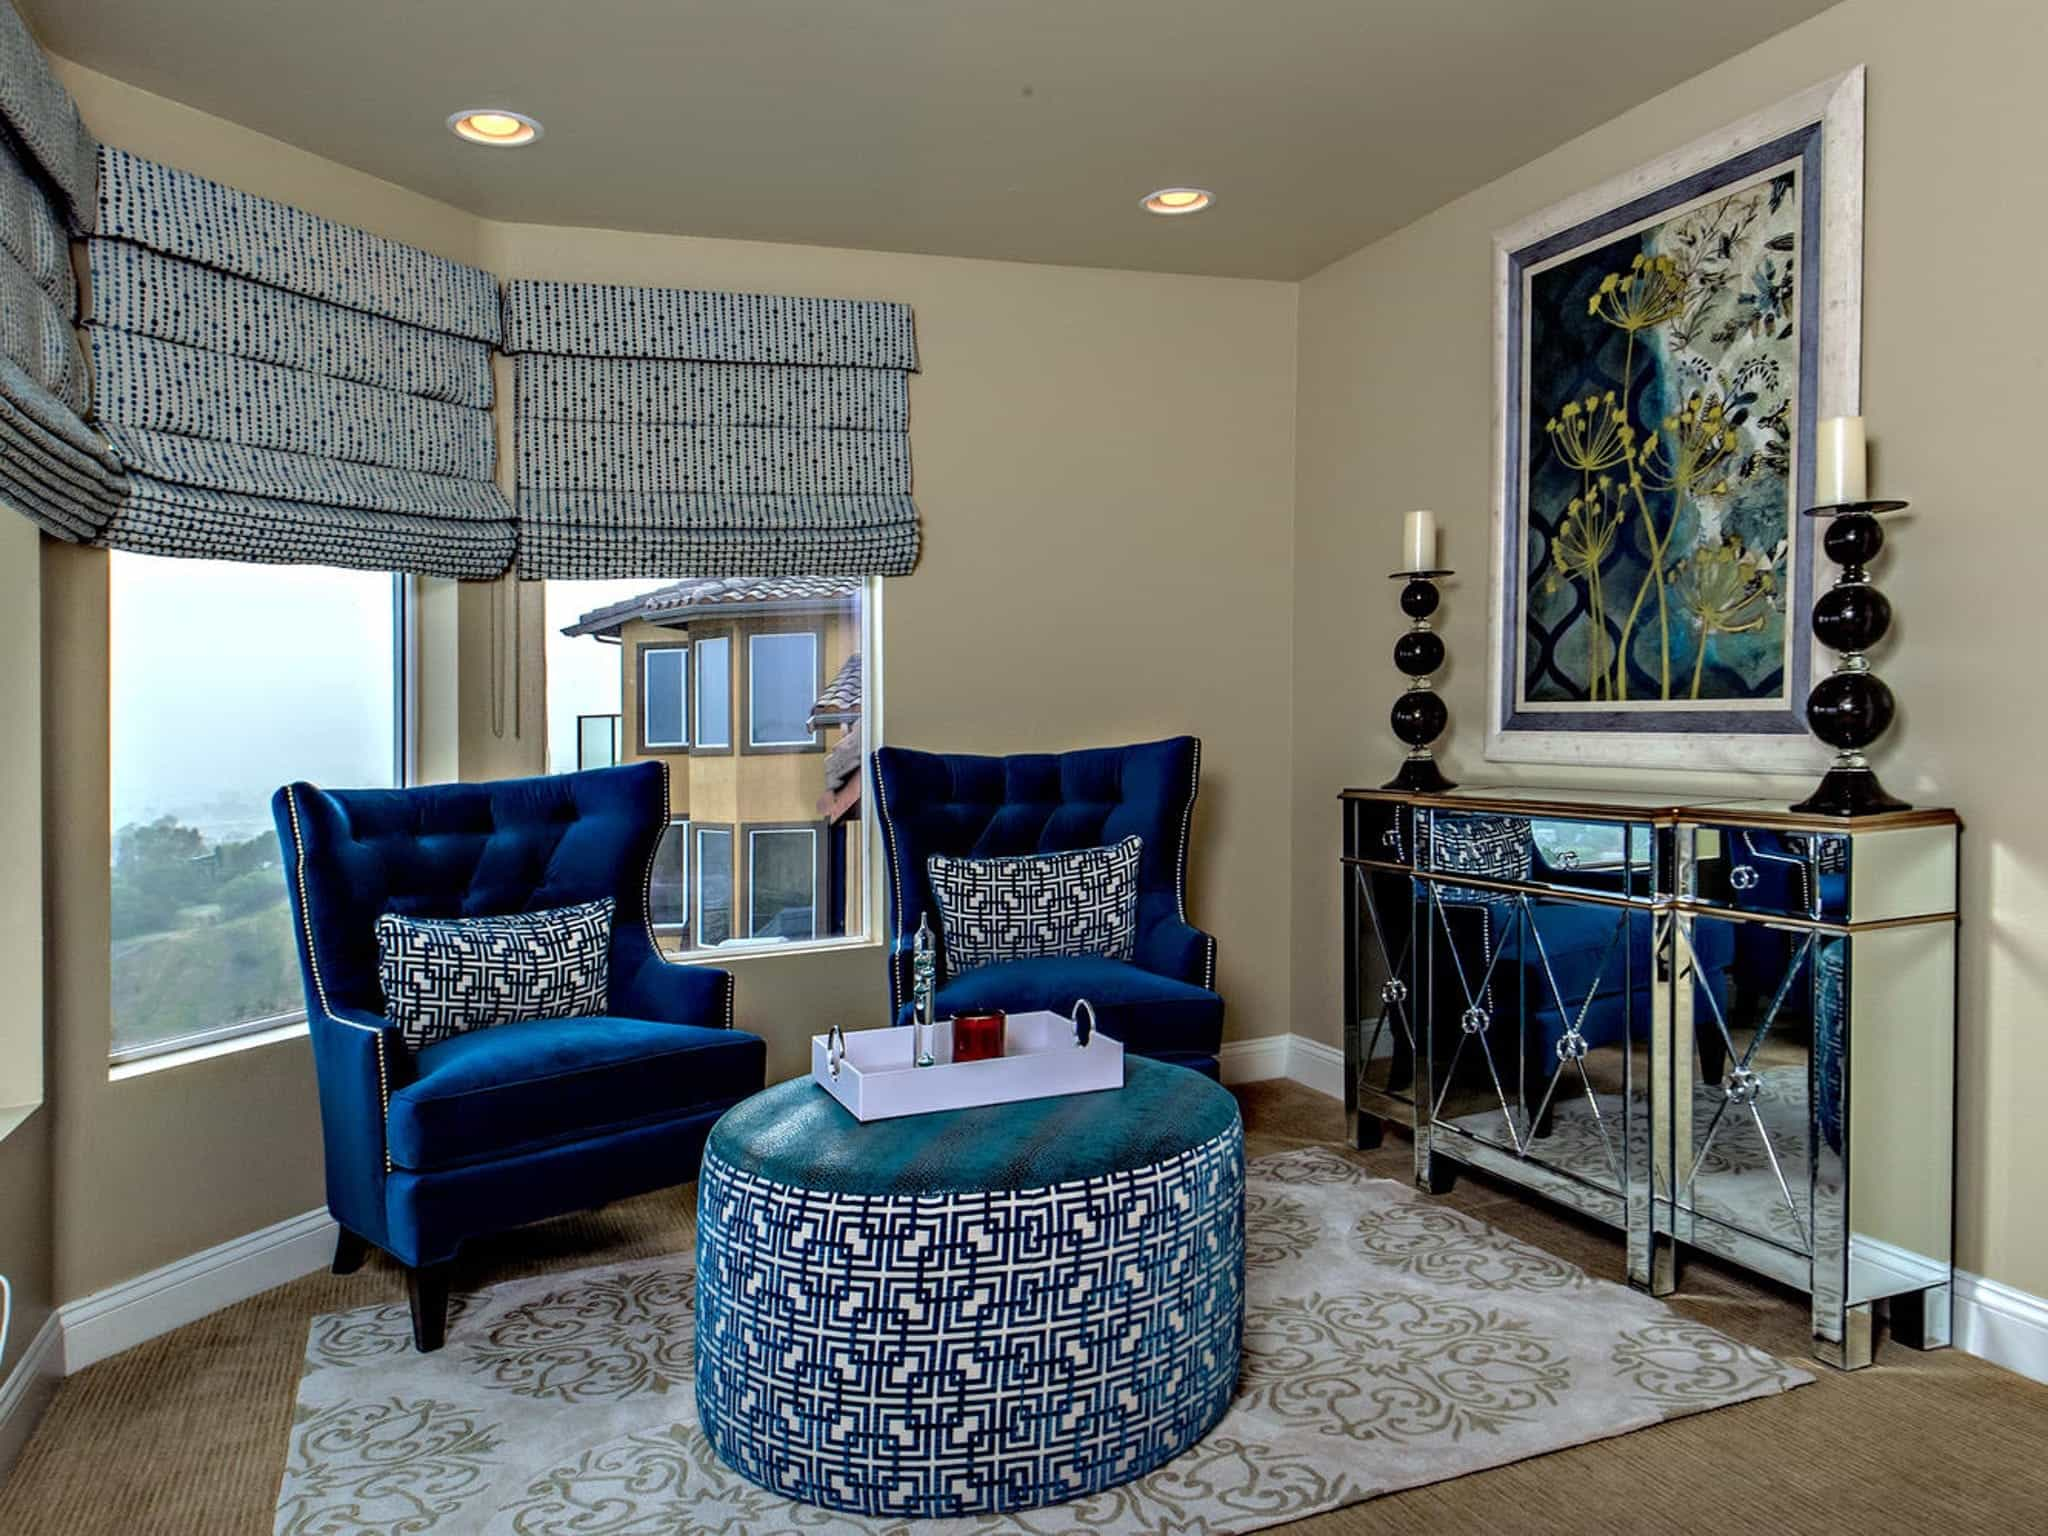 Blue Velvet Tufted Wingback Chairs And Ottoman For Small Classic Living Room (Image 2 of 13)